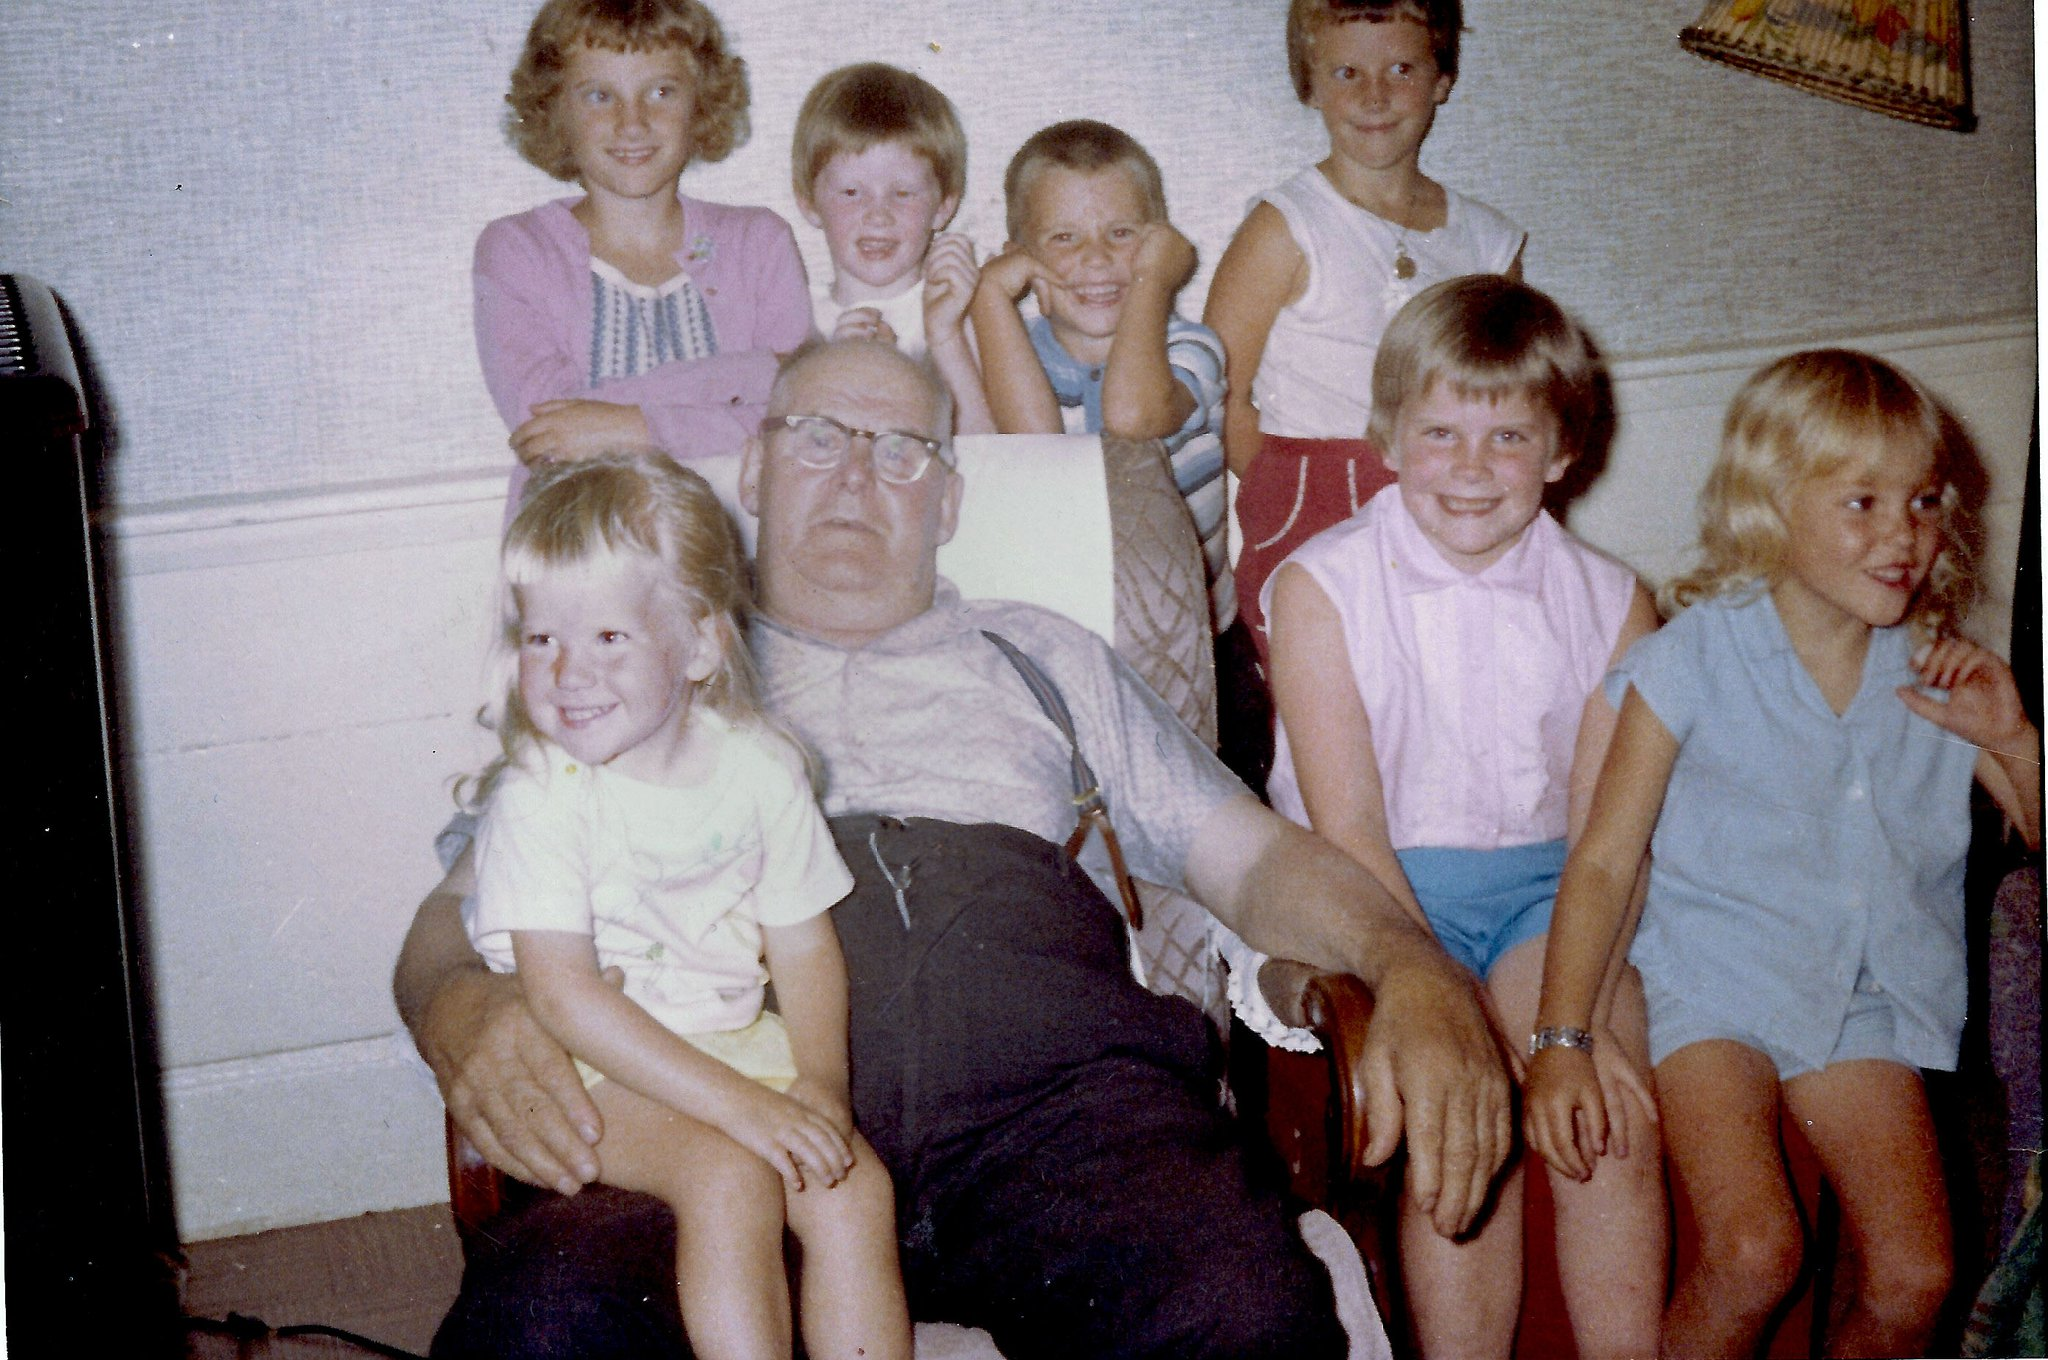 Just a few of my cousins, with yours truly on Grampy's lap. At any given time, there were hordes of us running around in and around the house. The only time we stopped was to eat.  I'm not sure hands got washed first though.